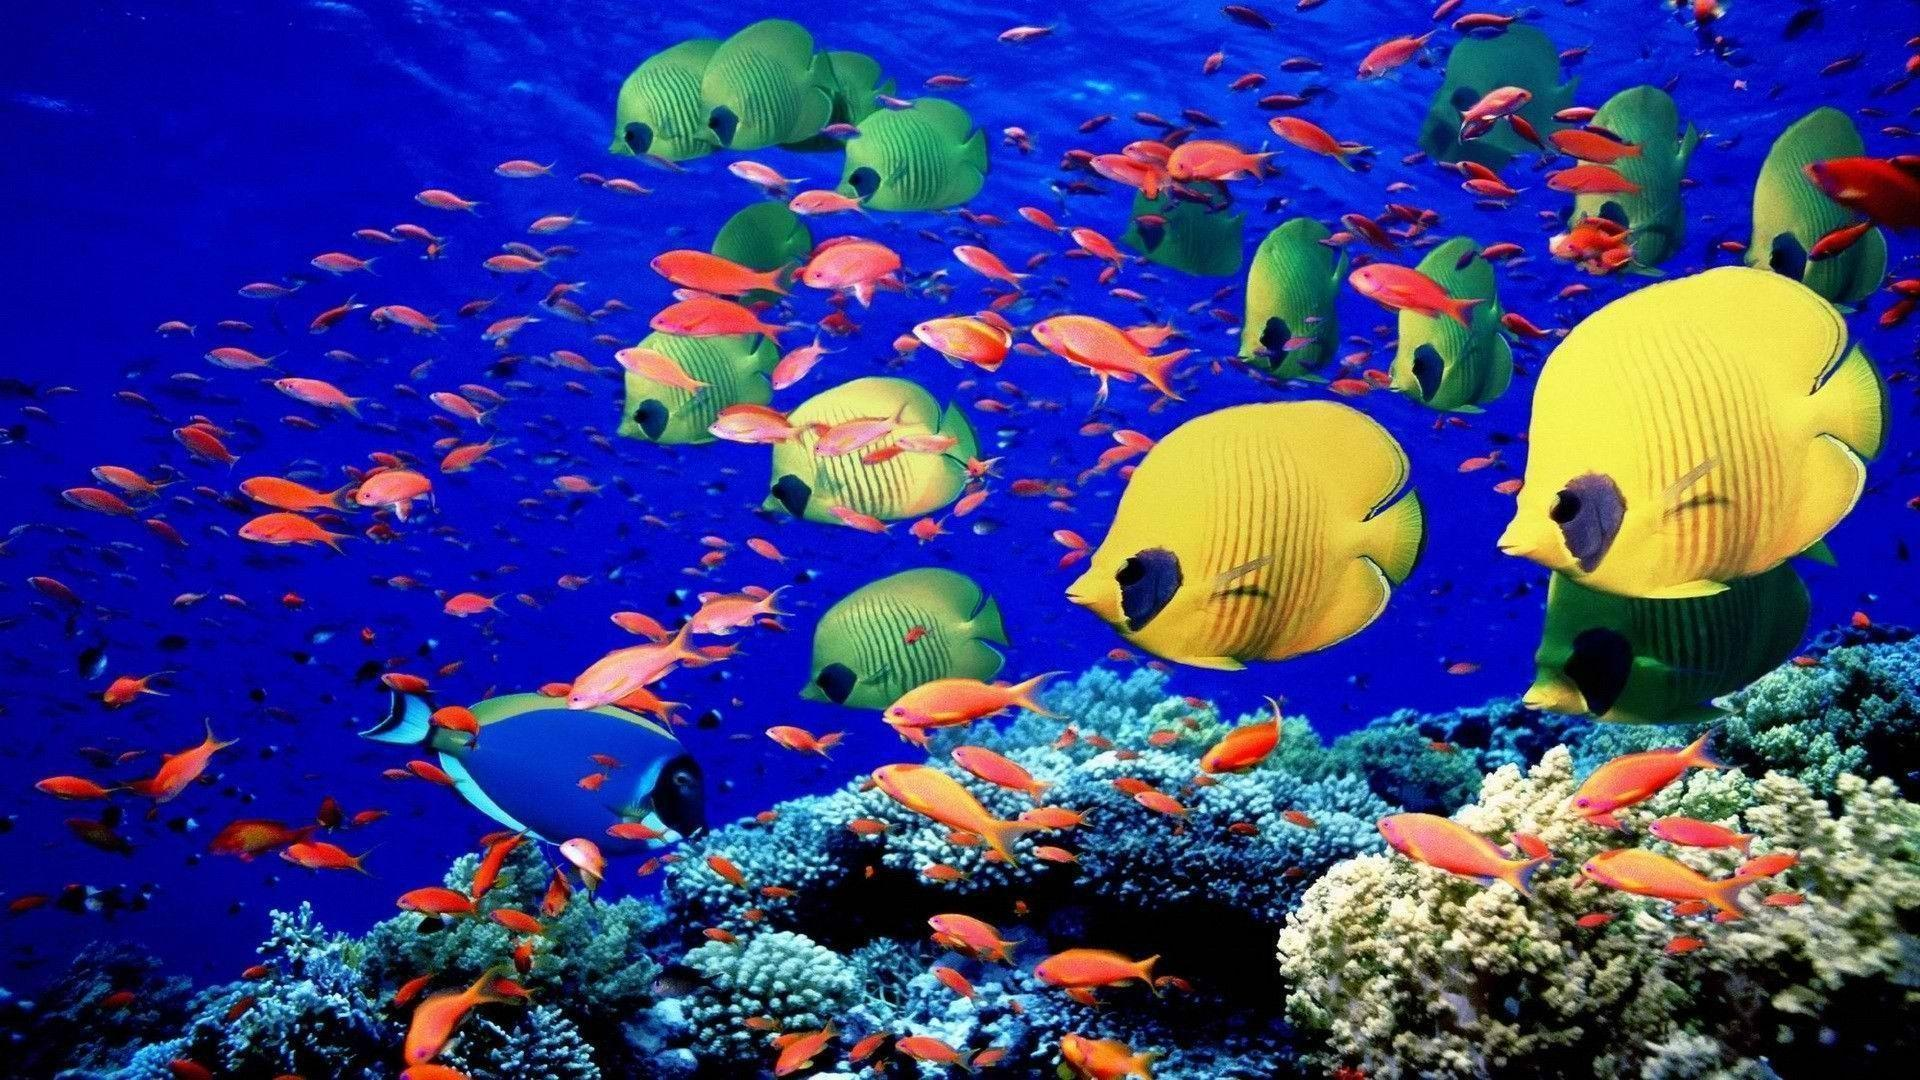 Animals fishes underwater swim coral reef colors bright sea life ...